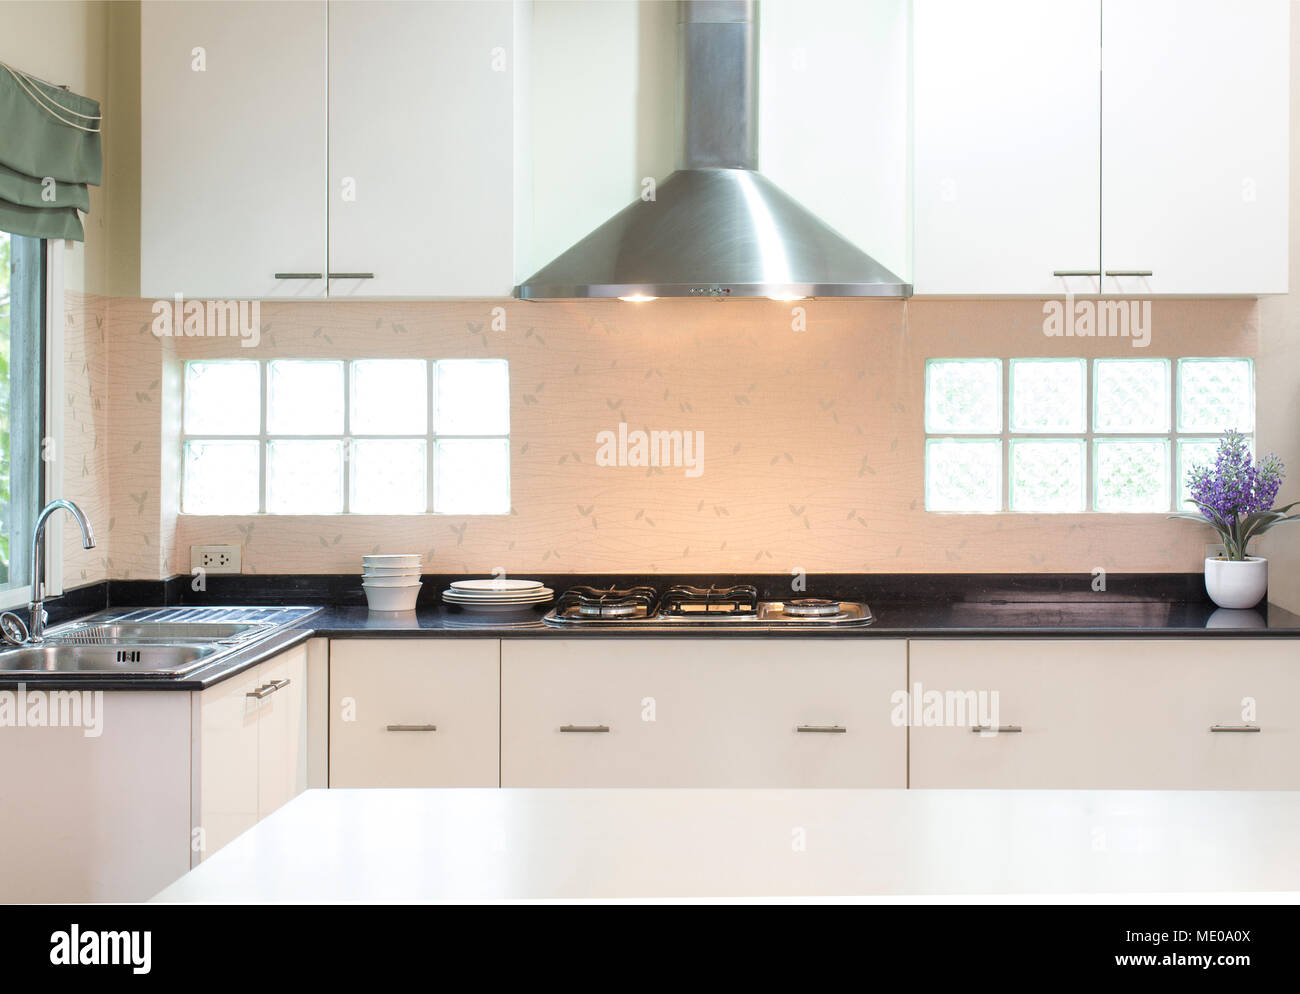 Modern Style Kitchen Counter With Cabinet Stove Chimney Hood And Washbasin